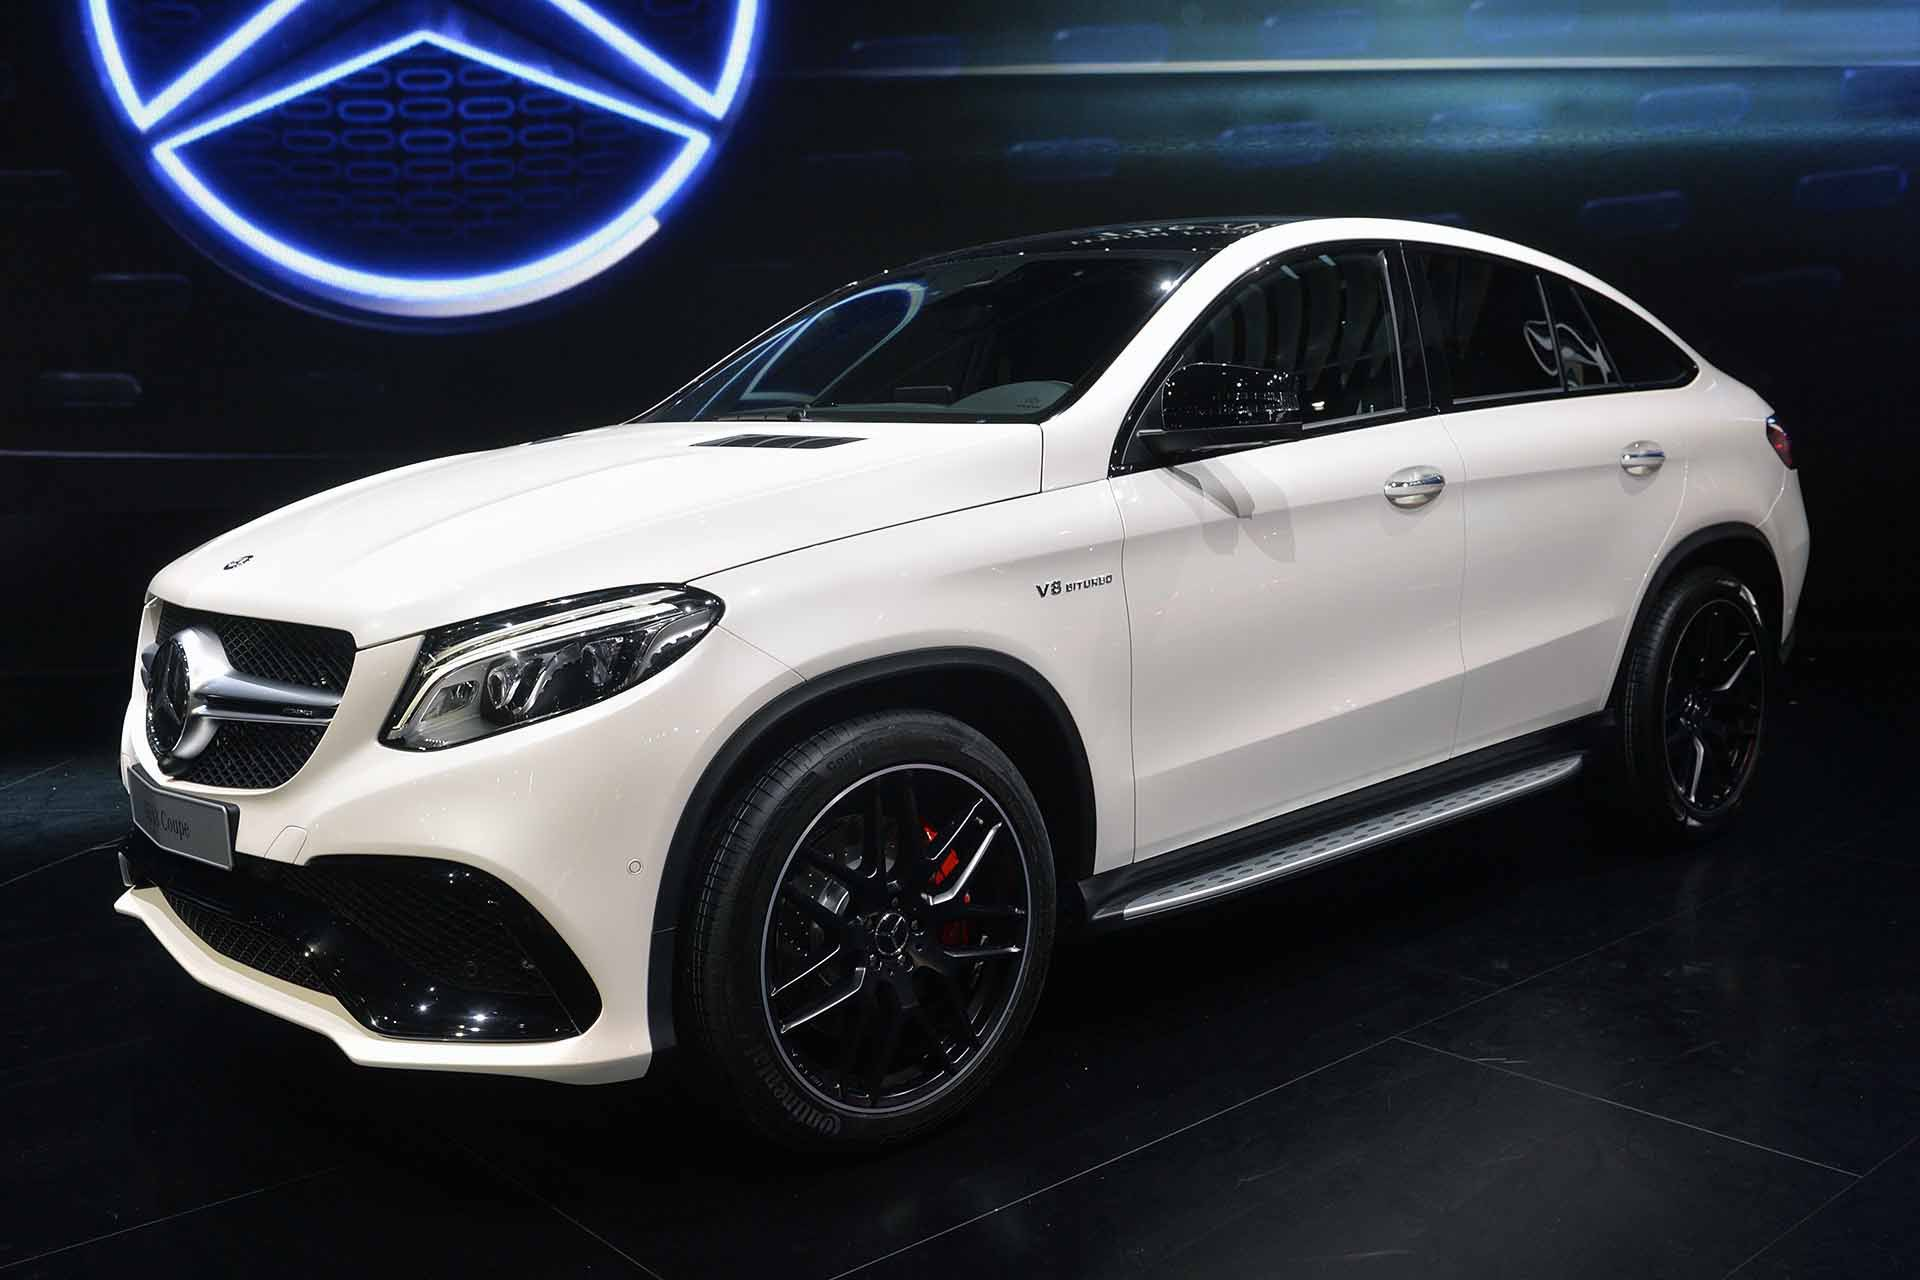 Pictures Of A Mercedes Benz GLE Coupe